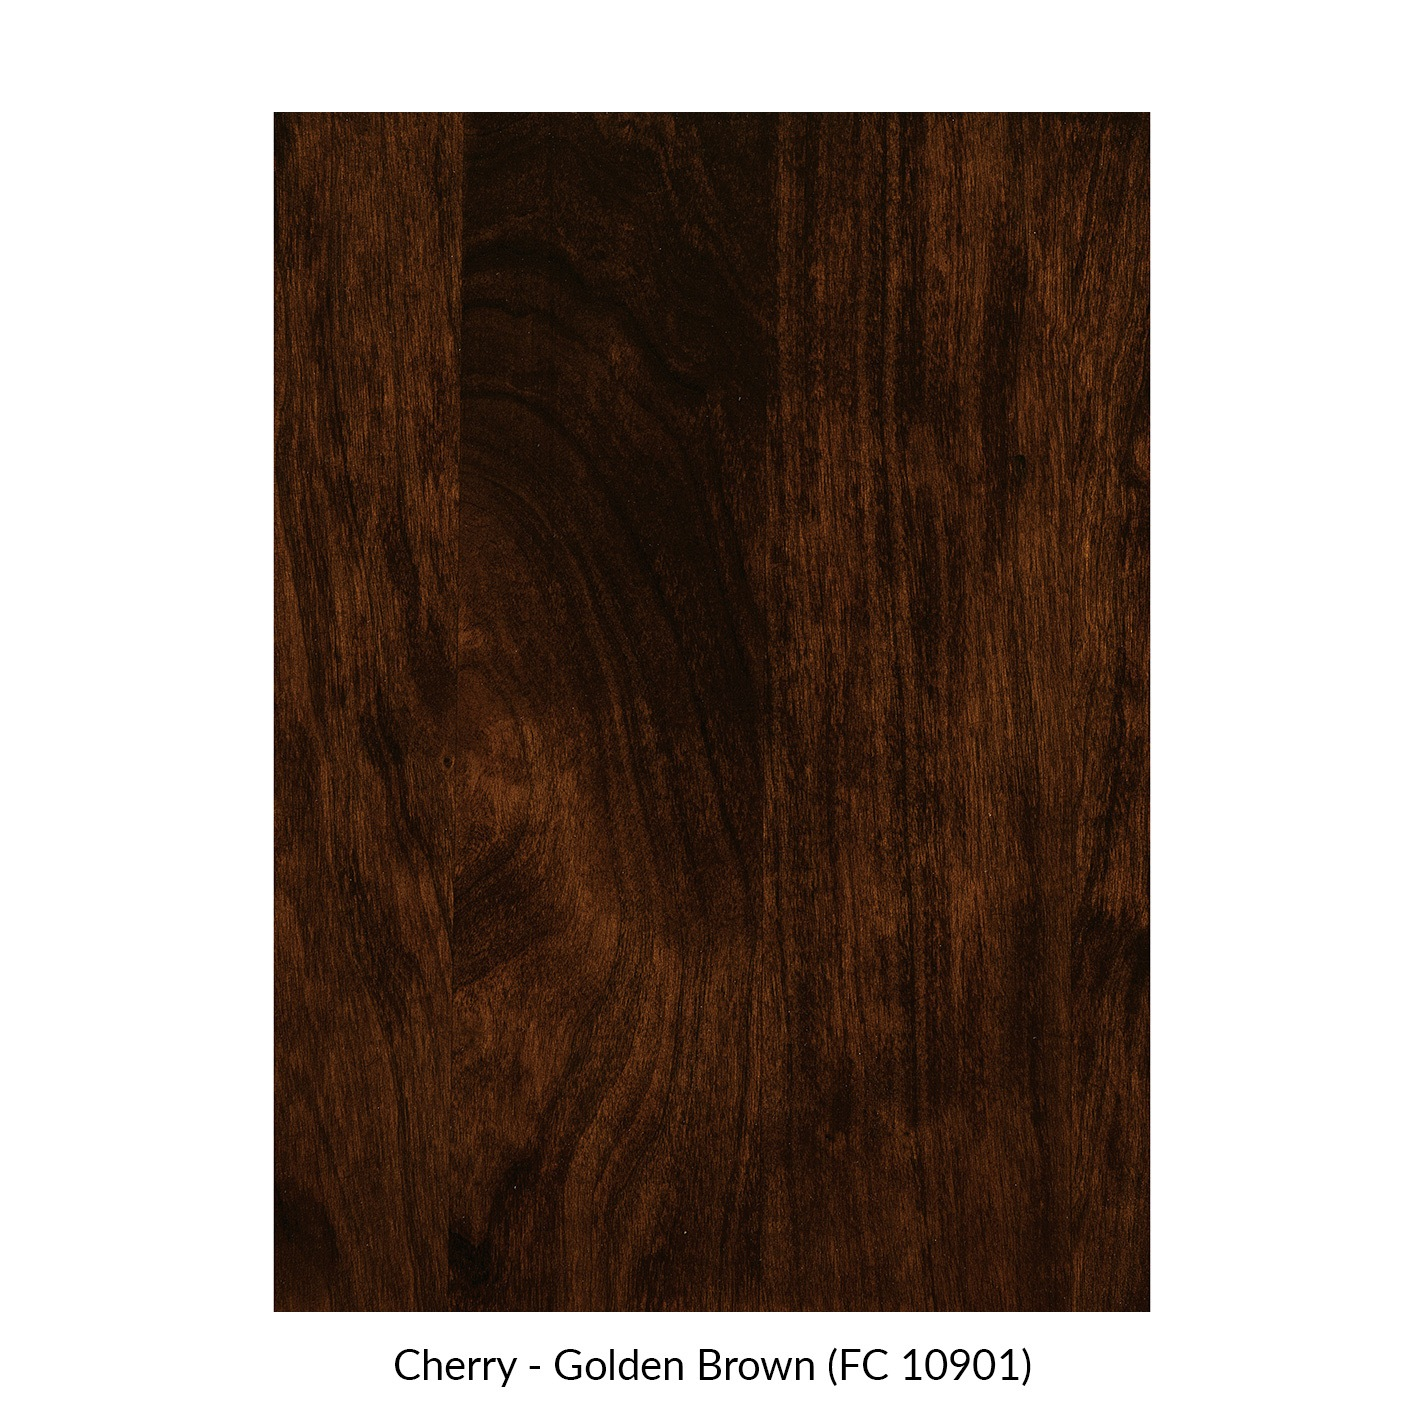 spectrum-cherry-golden-brown-fc-10901.jpg